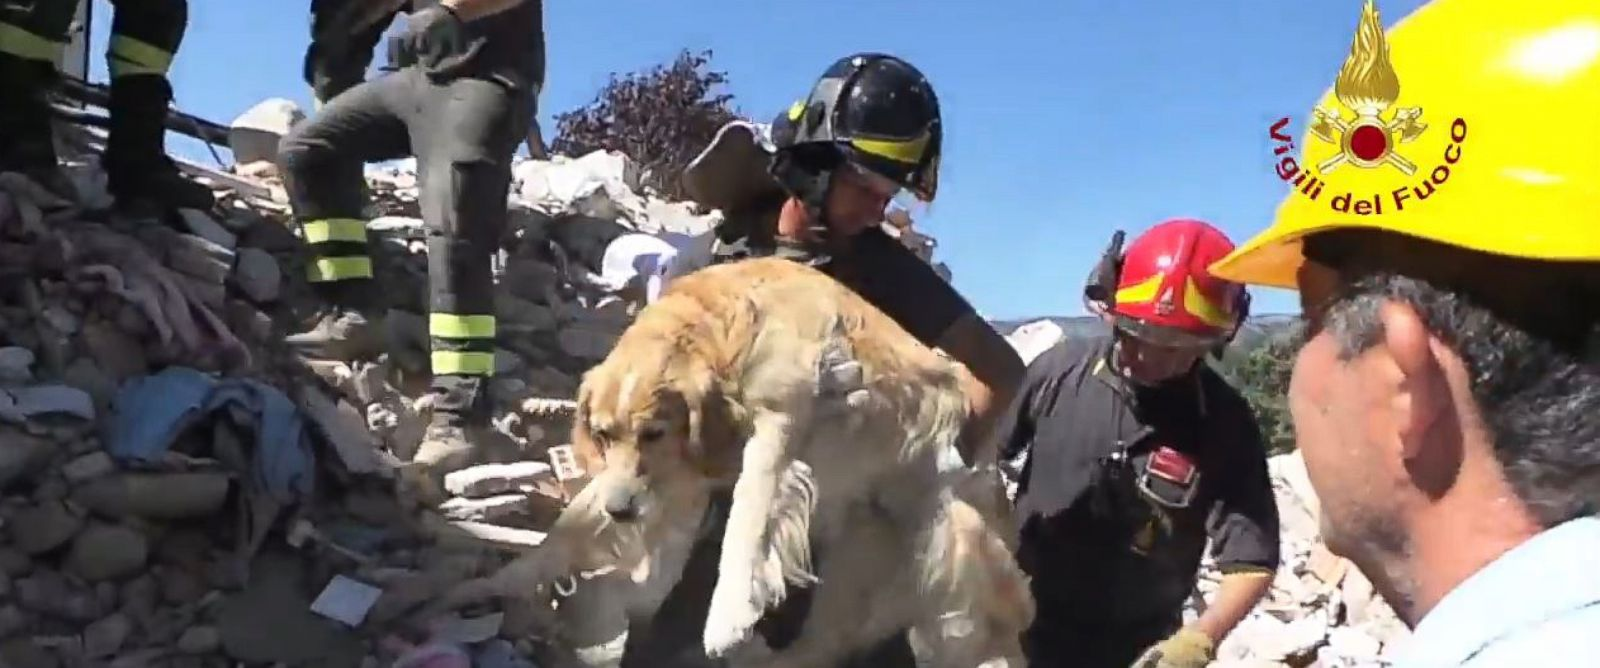 Dog Rescued Italy Earthquake